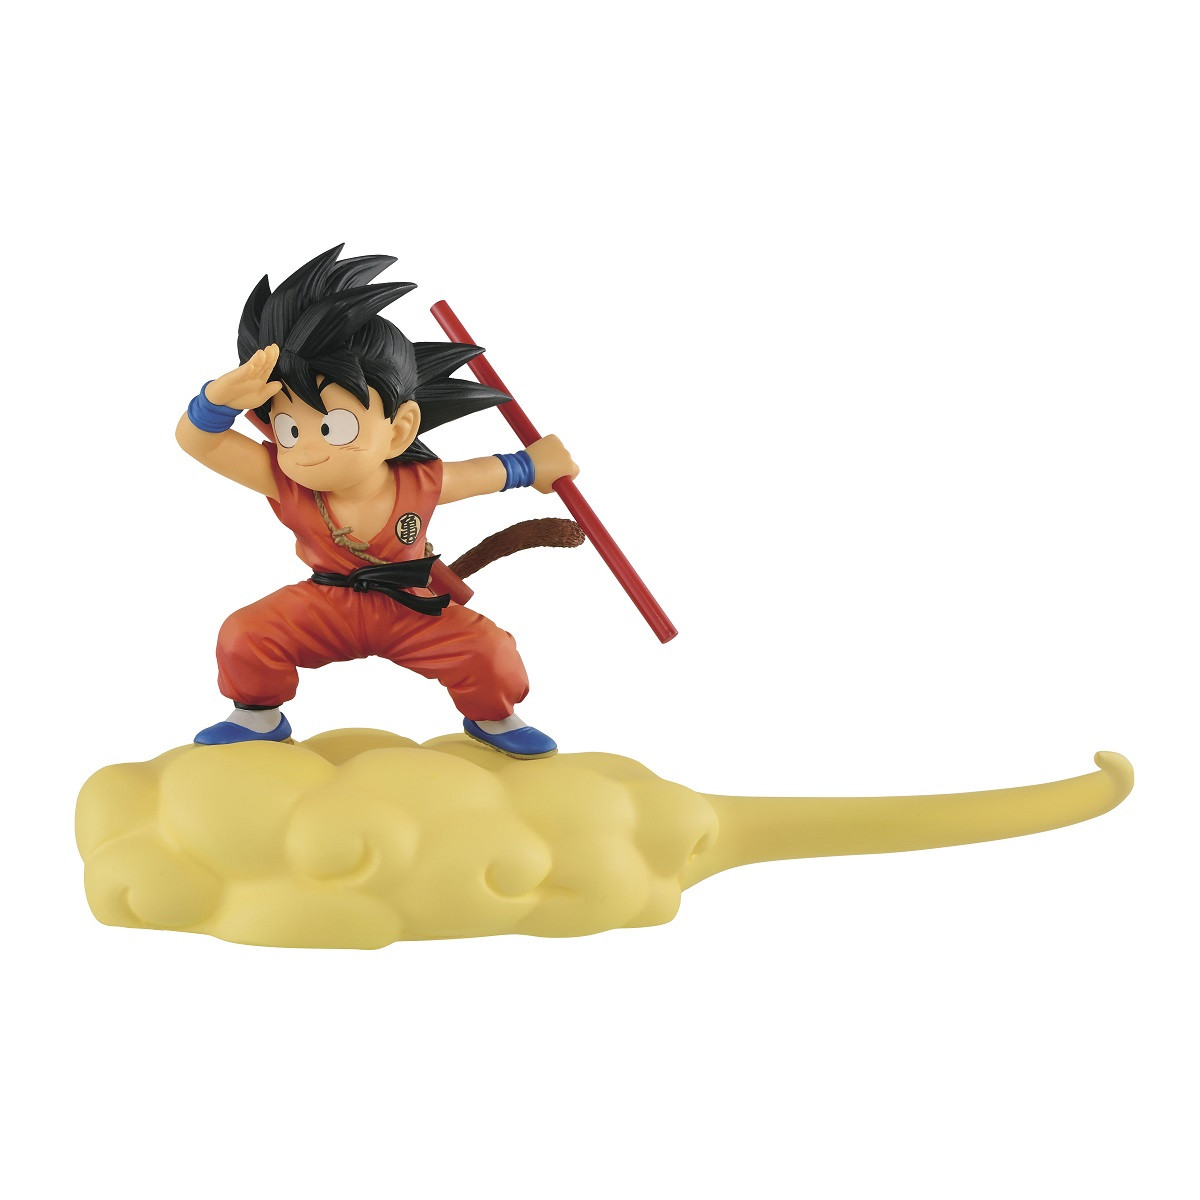 Dragon Ball Kintoun Son Goku Figure - 5 Inch PVC Collectible Figure